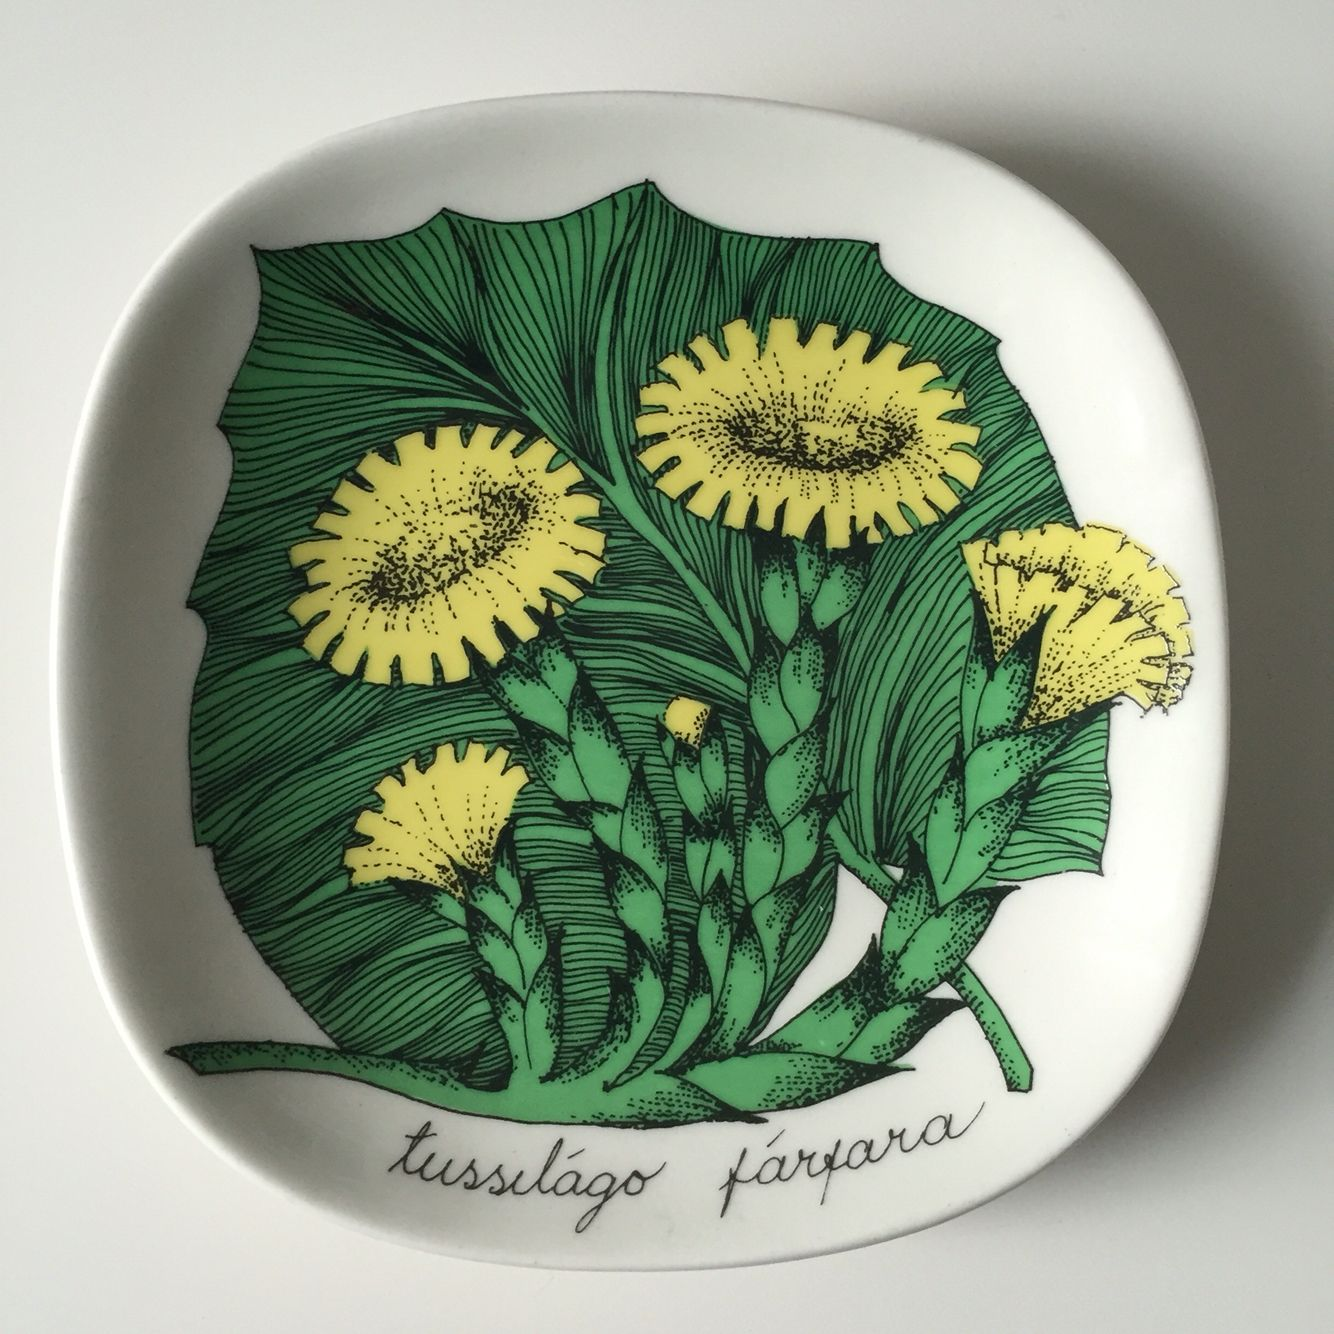 """Arabia of finland Botanica small wall hanging from Esteri Tomula Made in Finland small plate Tussilago Farfara Collective plate A collective Botanica plate from Arabia, Tussilago Farfara, designed by Esteri Tomula from the 80s. I have another one Rosa Baccara, please check my list. Good condition, please see the pictures for detail. Size: 12.1cm x 12.1cm (4.76"""" x 4.76"""")"""